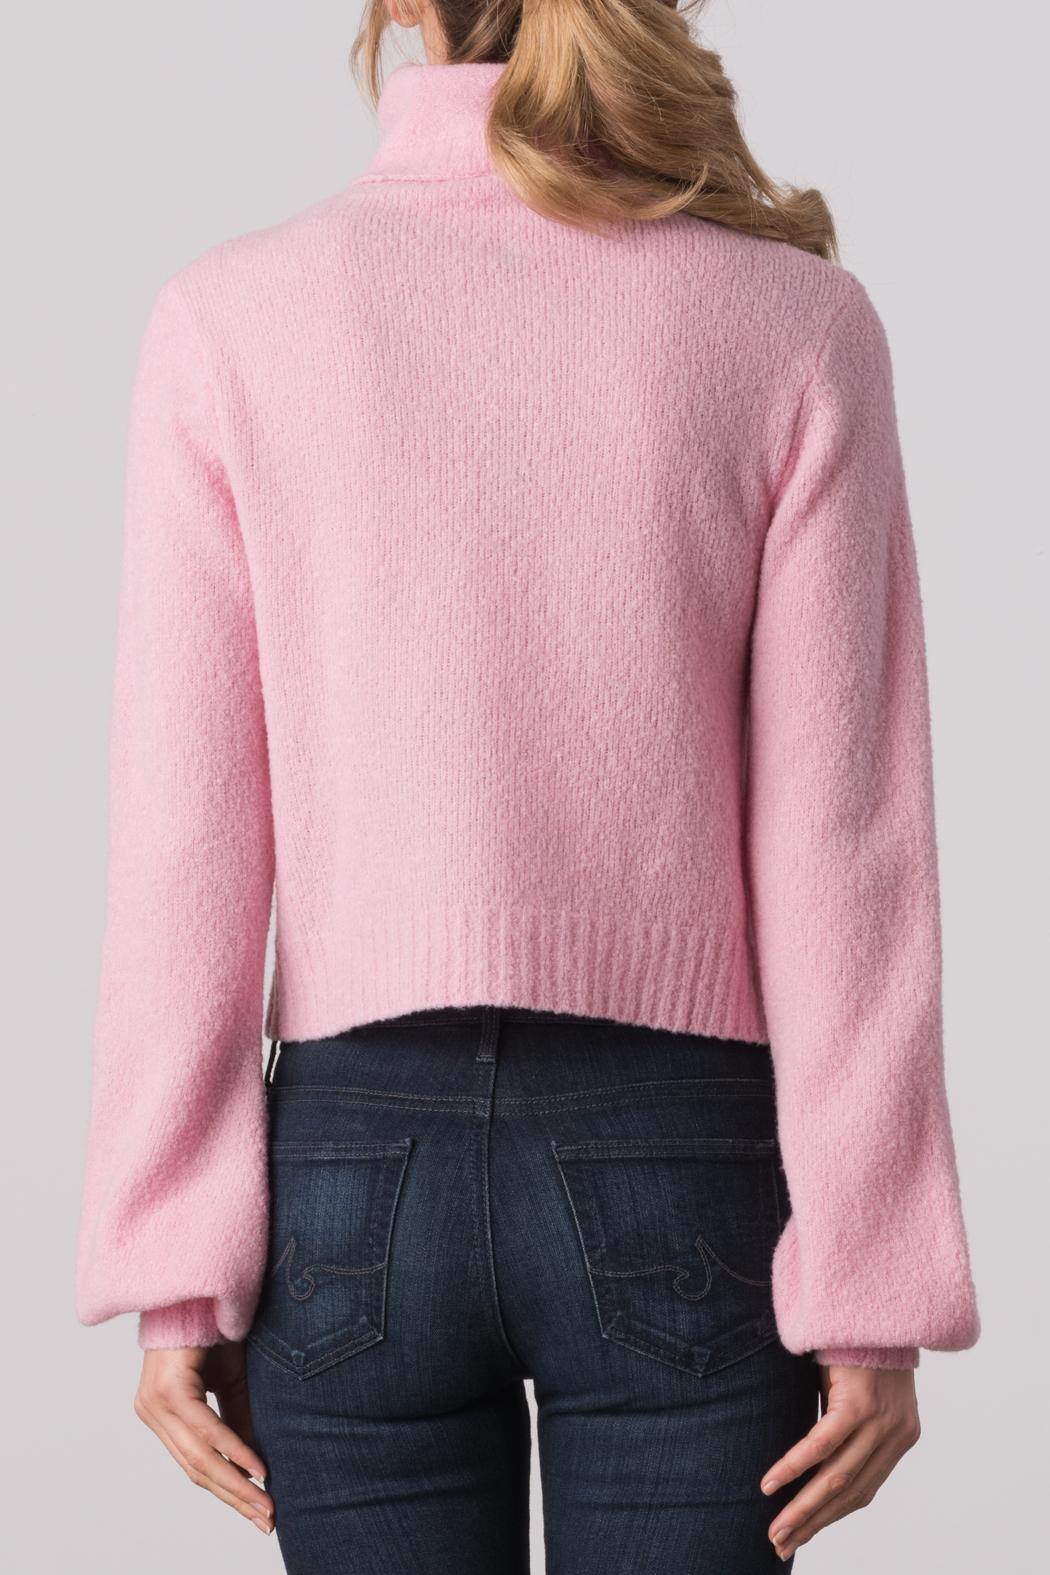 Margaret O'Leary Tara Turtleneck Sweater - Side Cropped Image